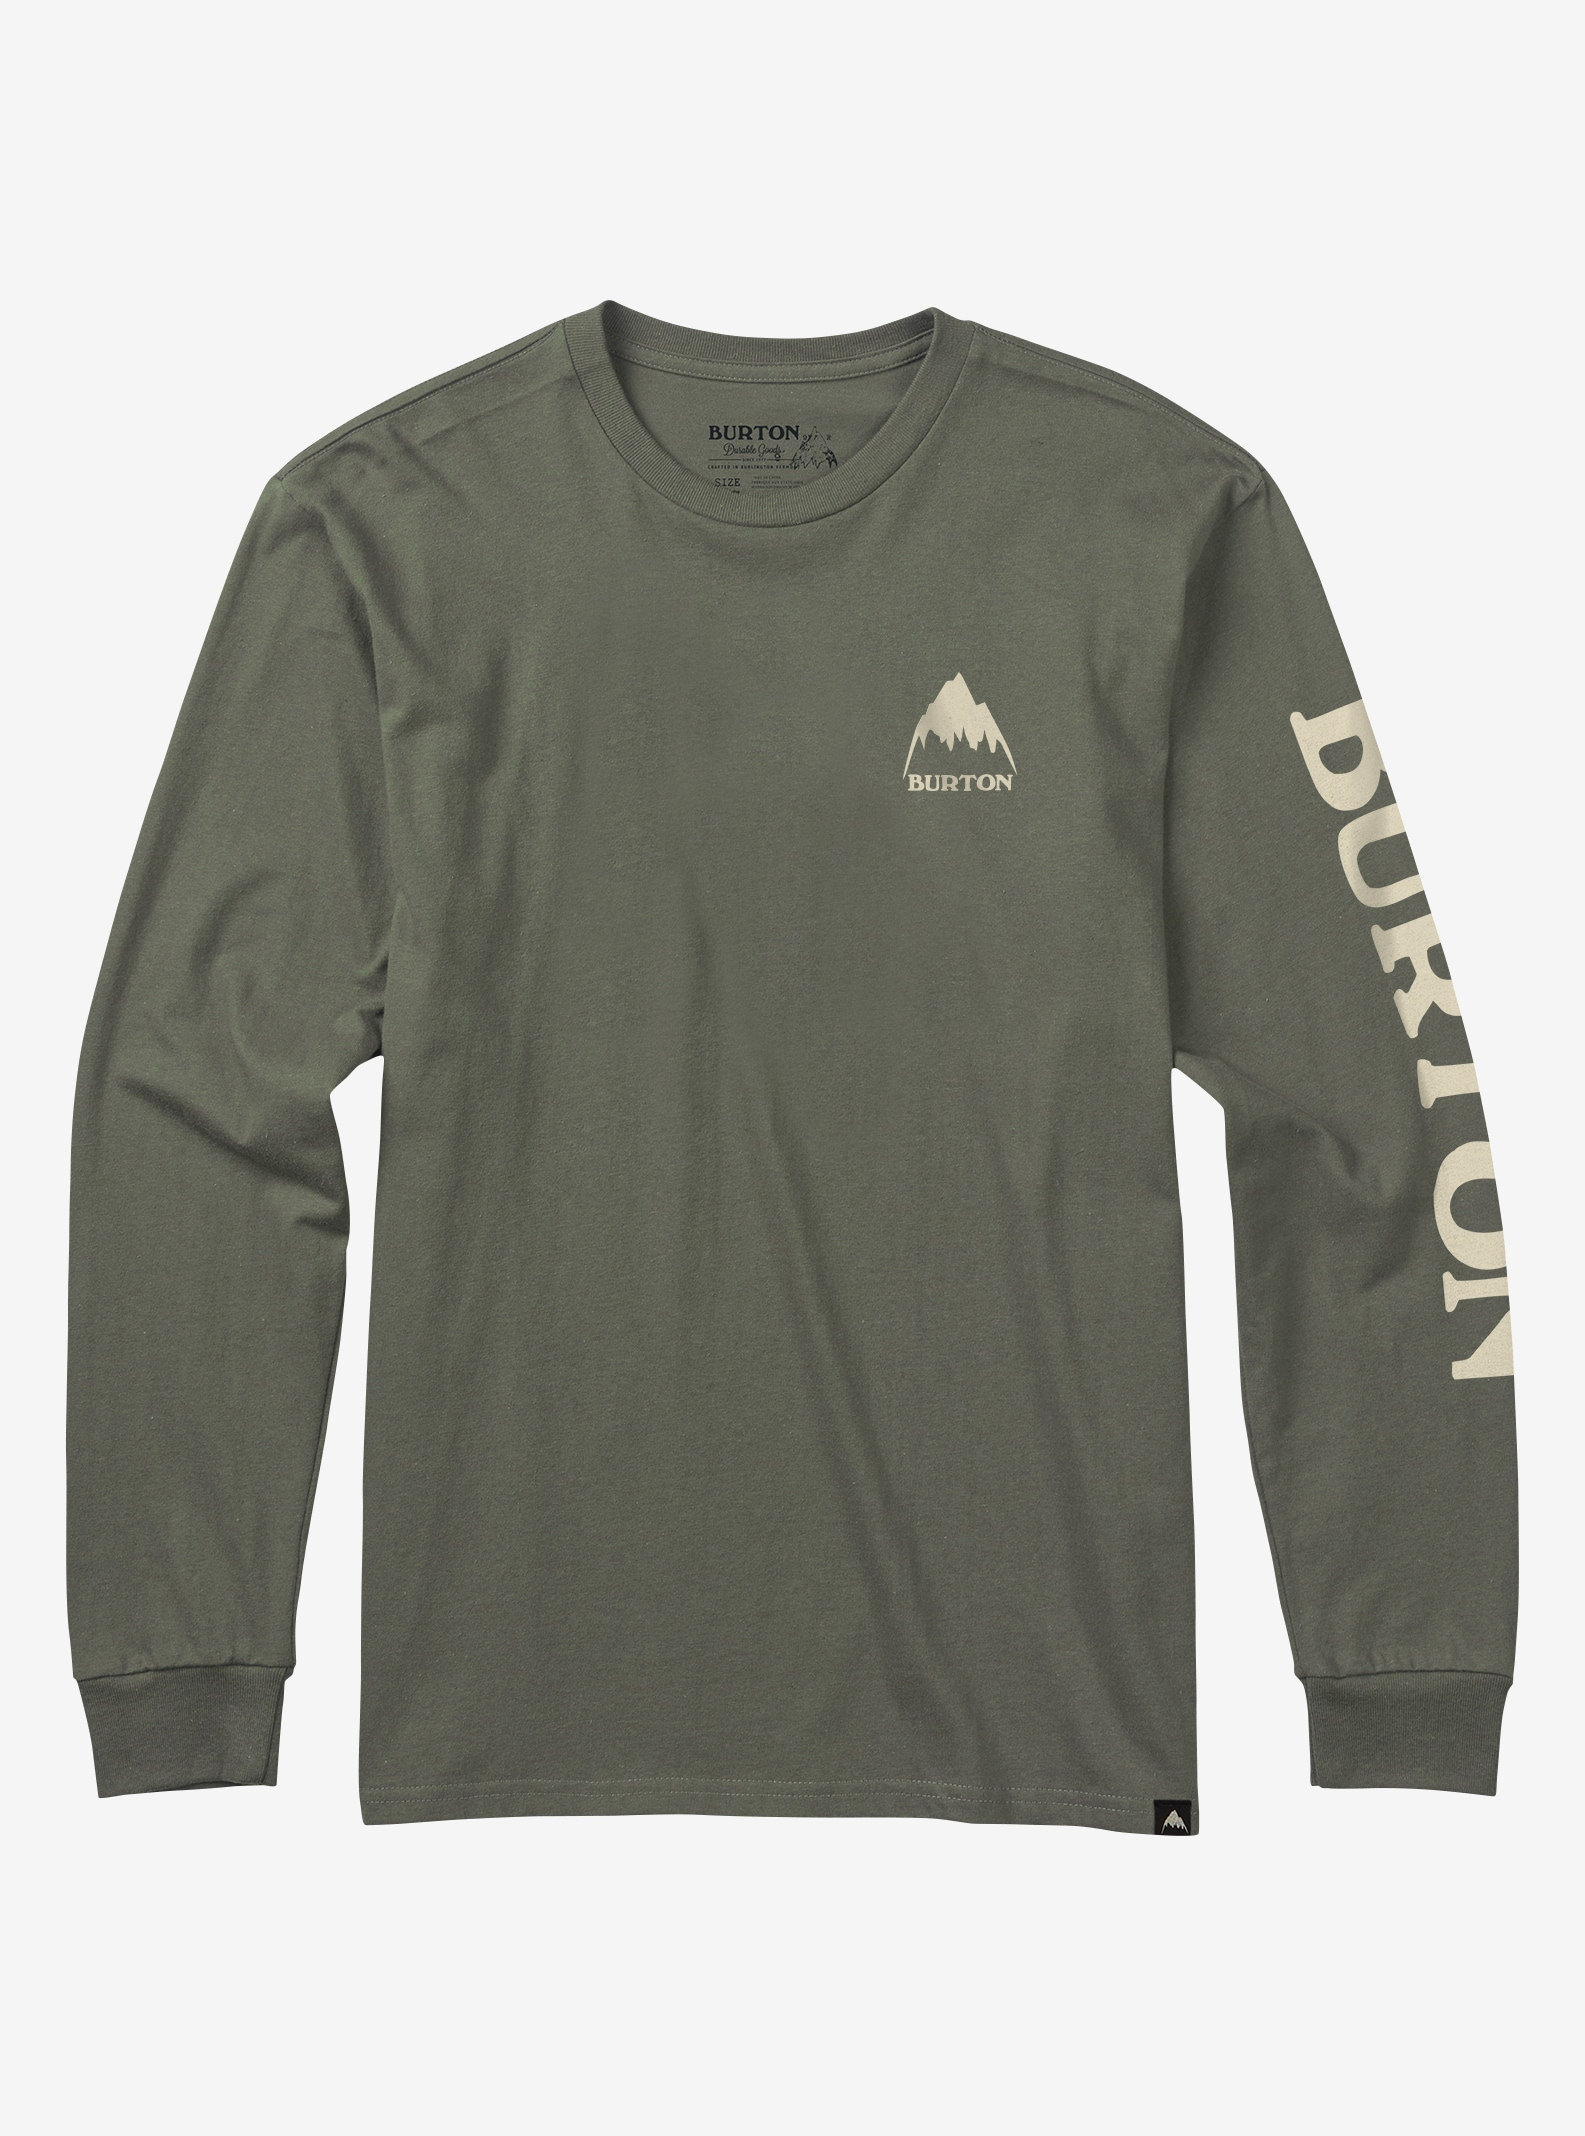 Men's Burton Elite Long Sleeve T Shirt shown in Dusty Olive